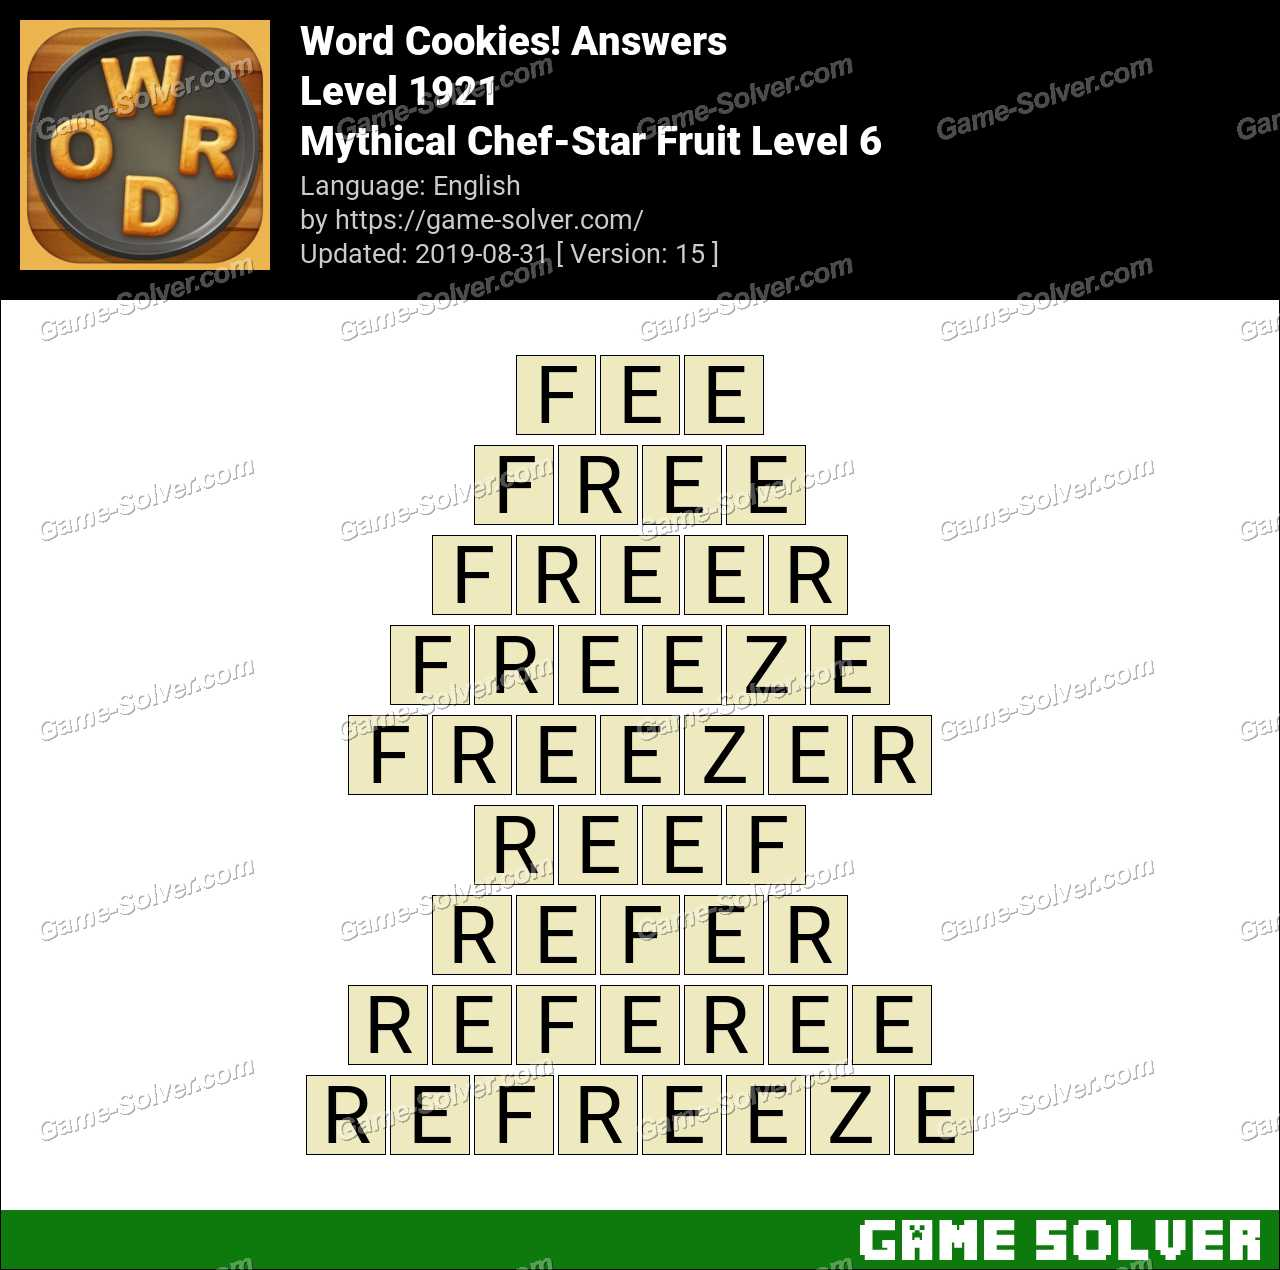 Word Cookies Mythical Chef-Star Fruit Level 6 Answers